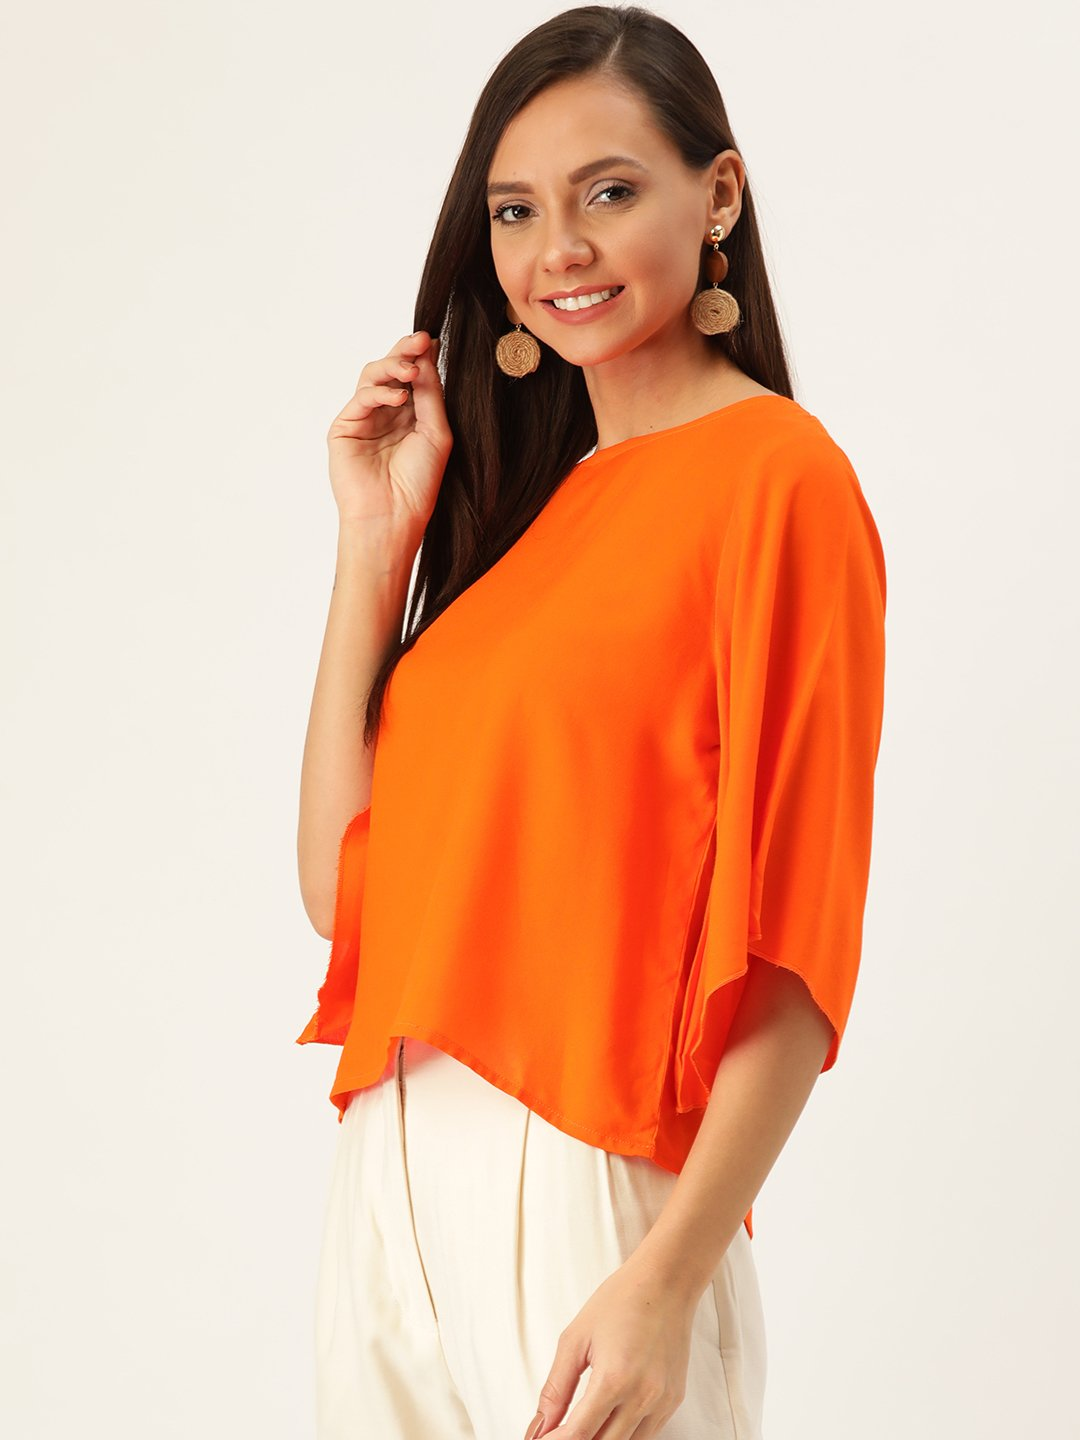 Orange Top With  White Stole